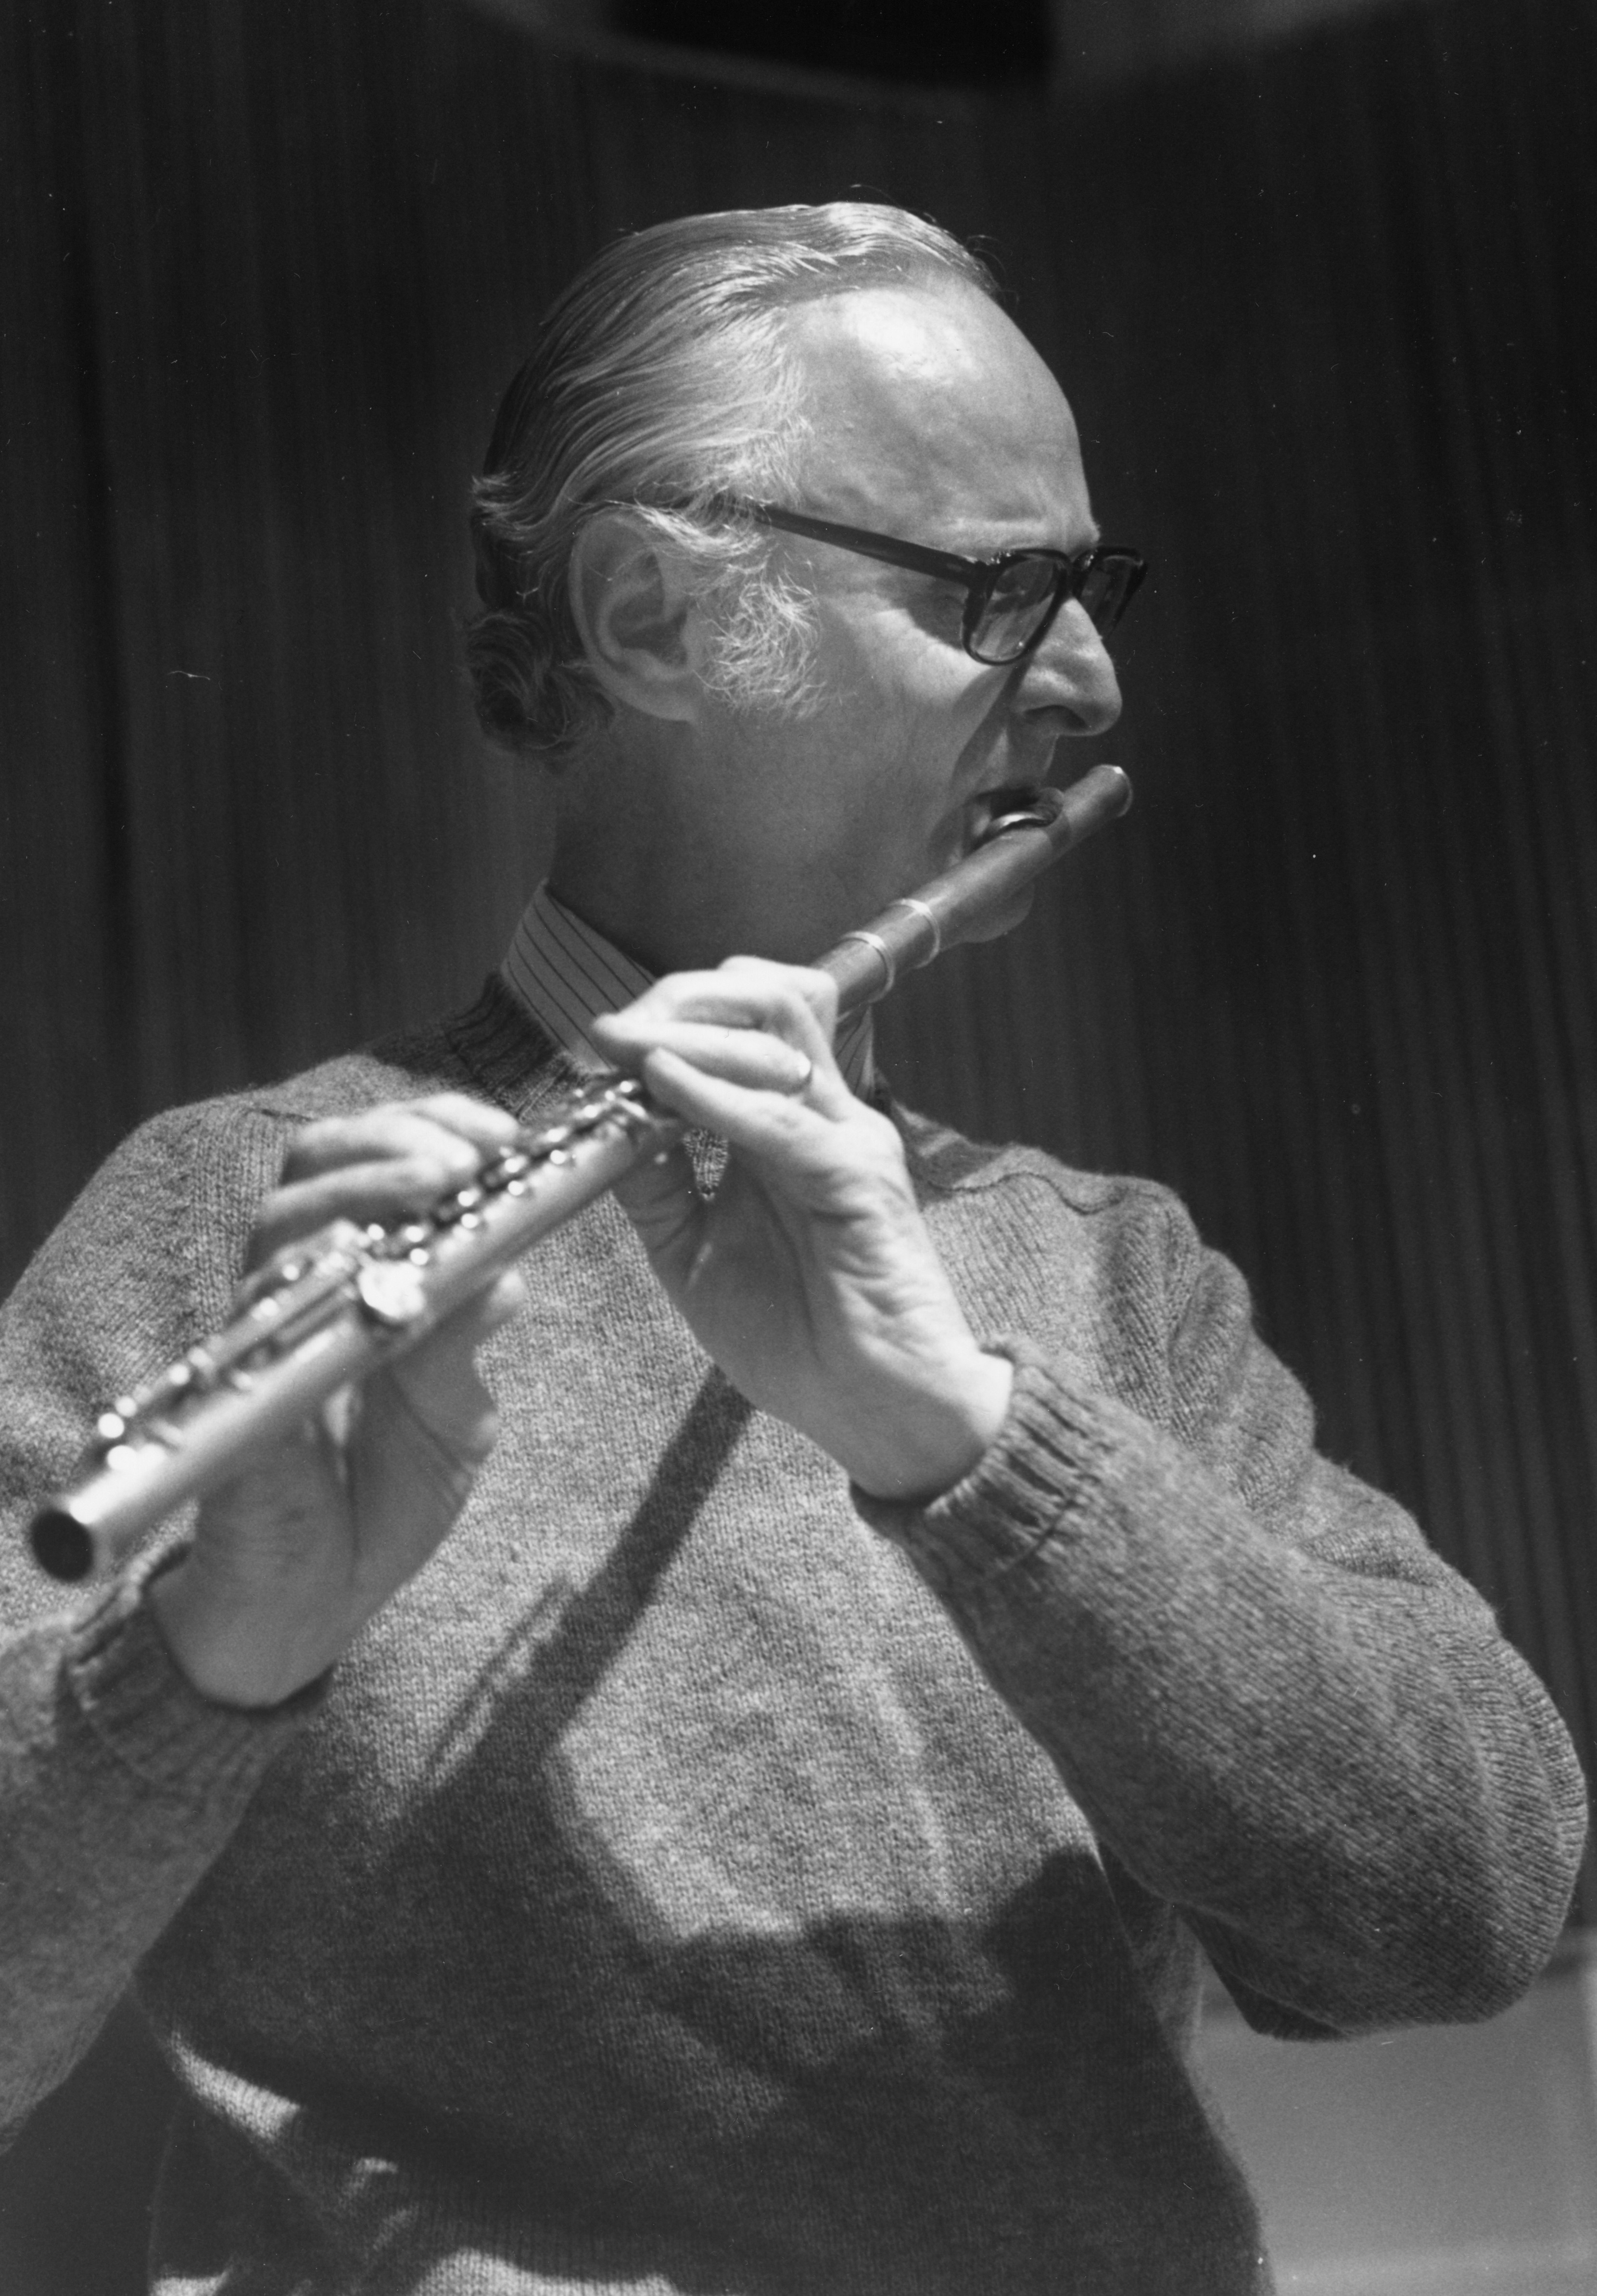 photo of Robert Willoughby playing